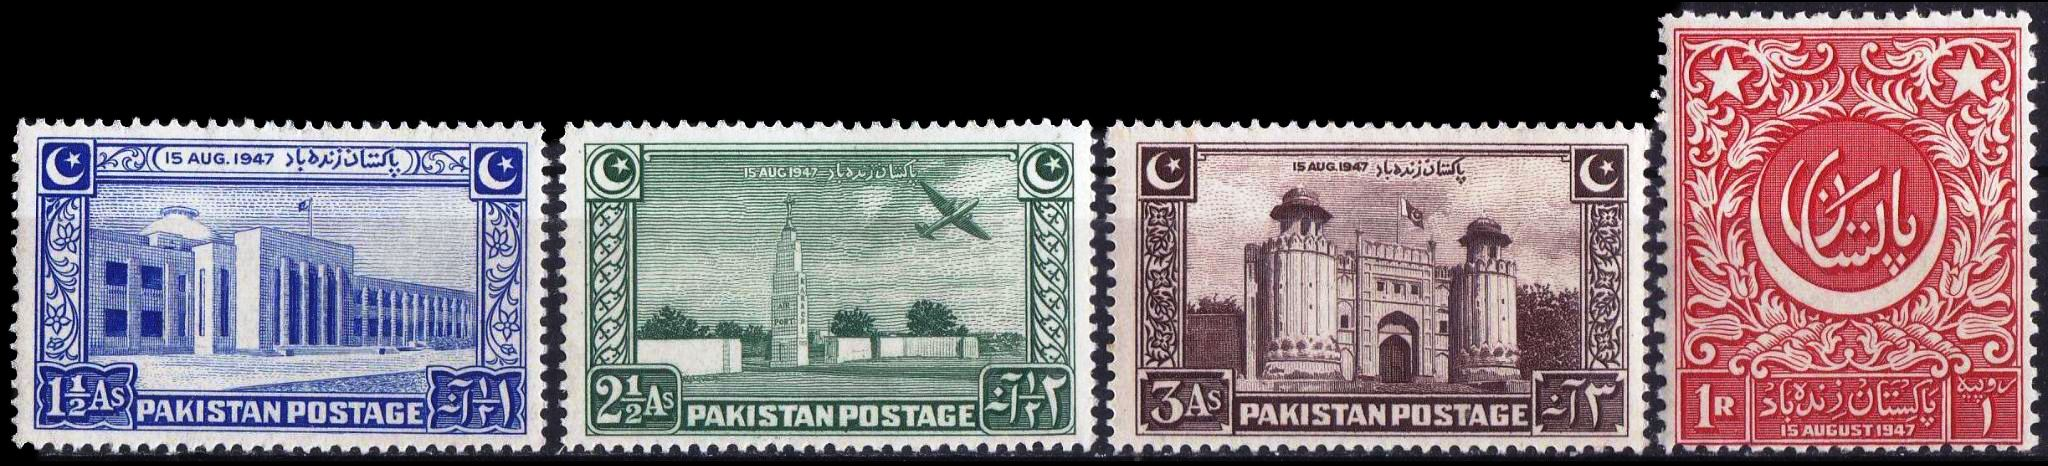 Pakistan 1948 Stamps Set First Independence Day